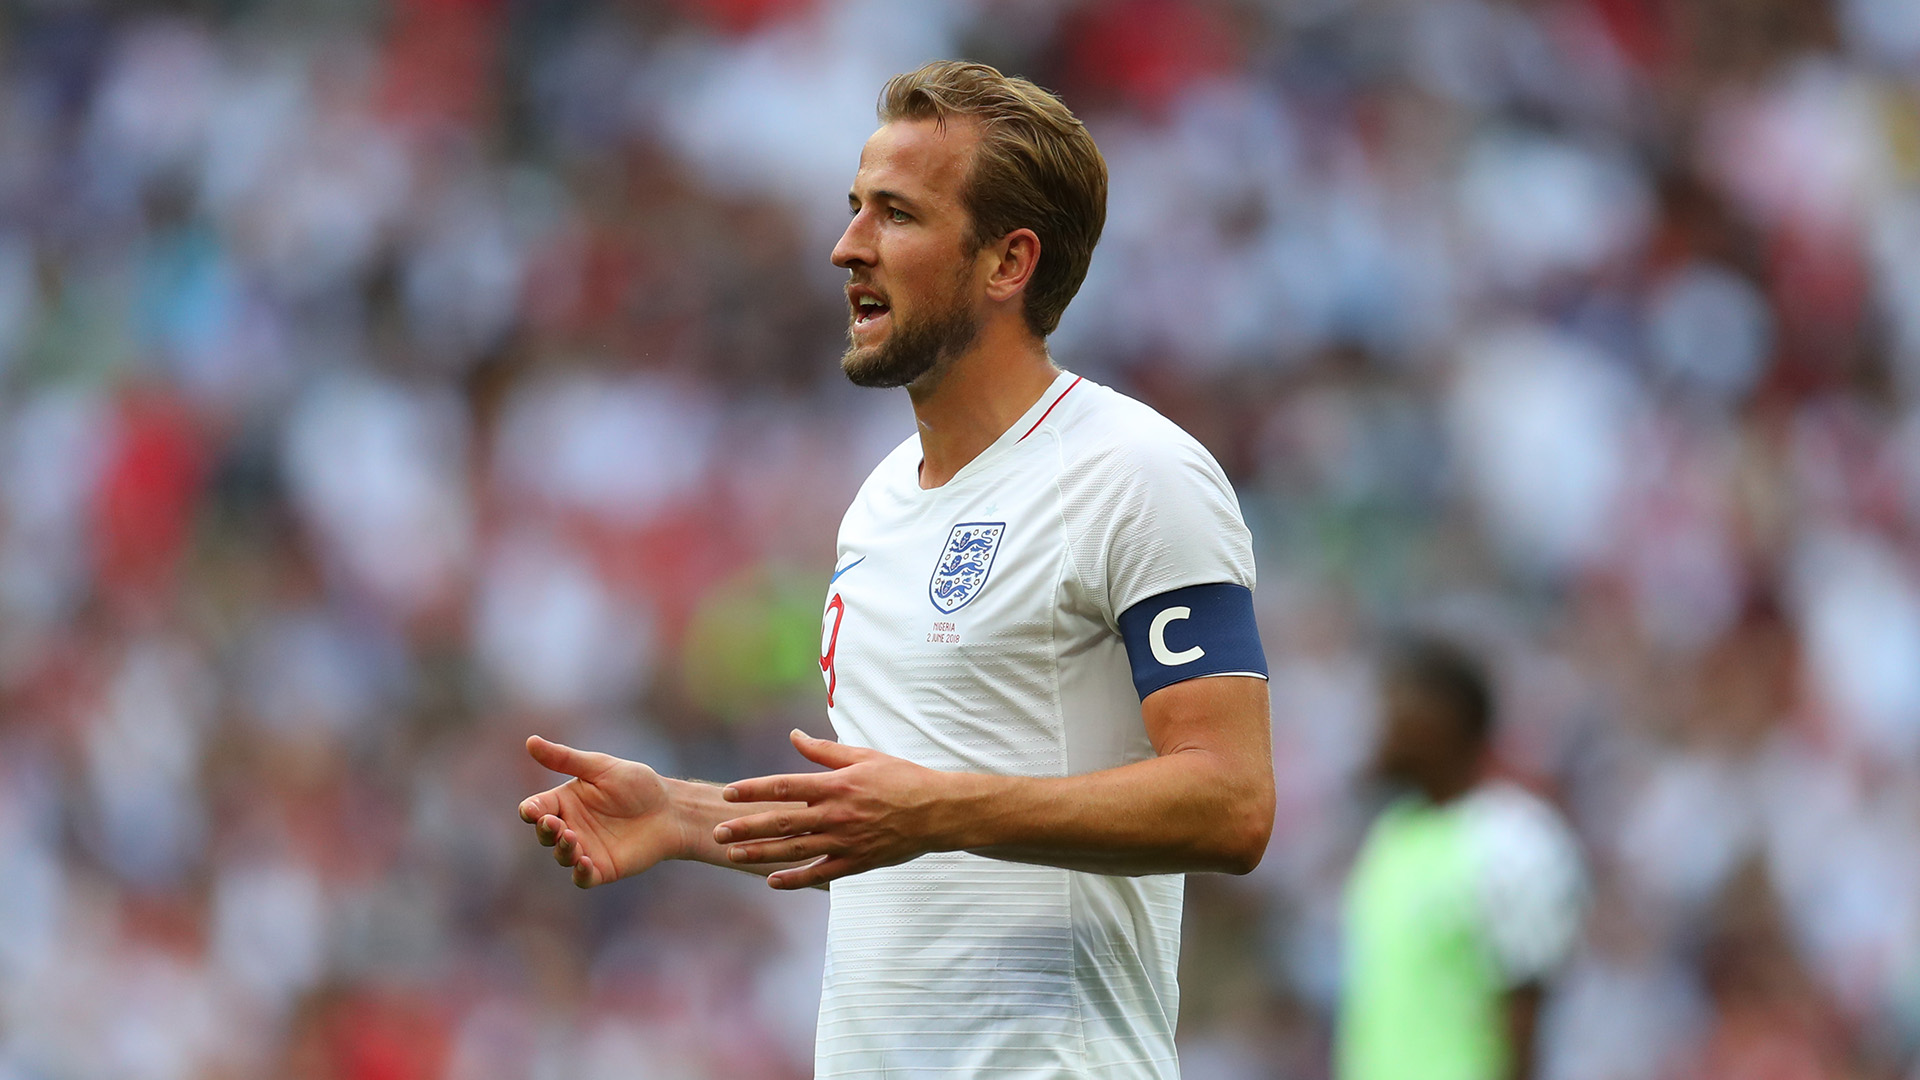 Kane disappointed by refereeing decisions despite England win